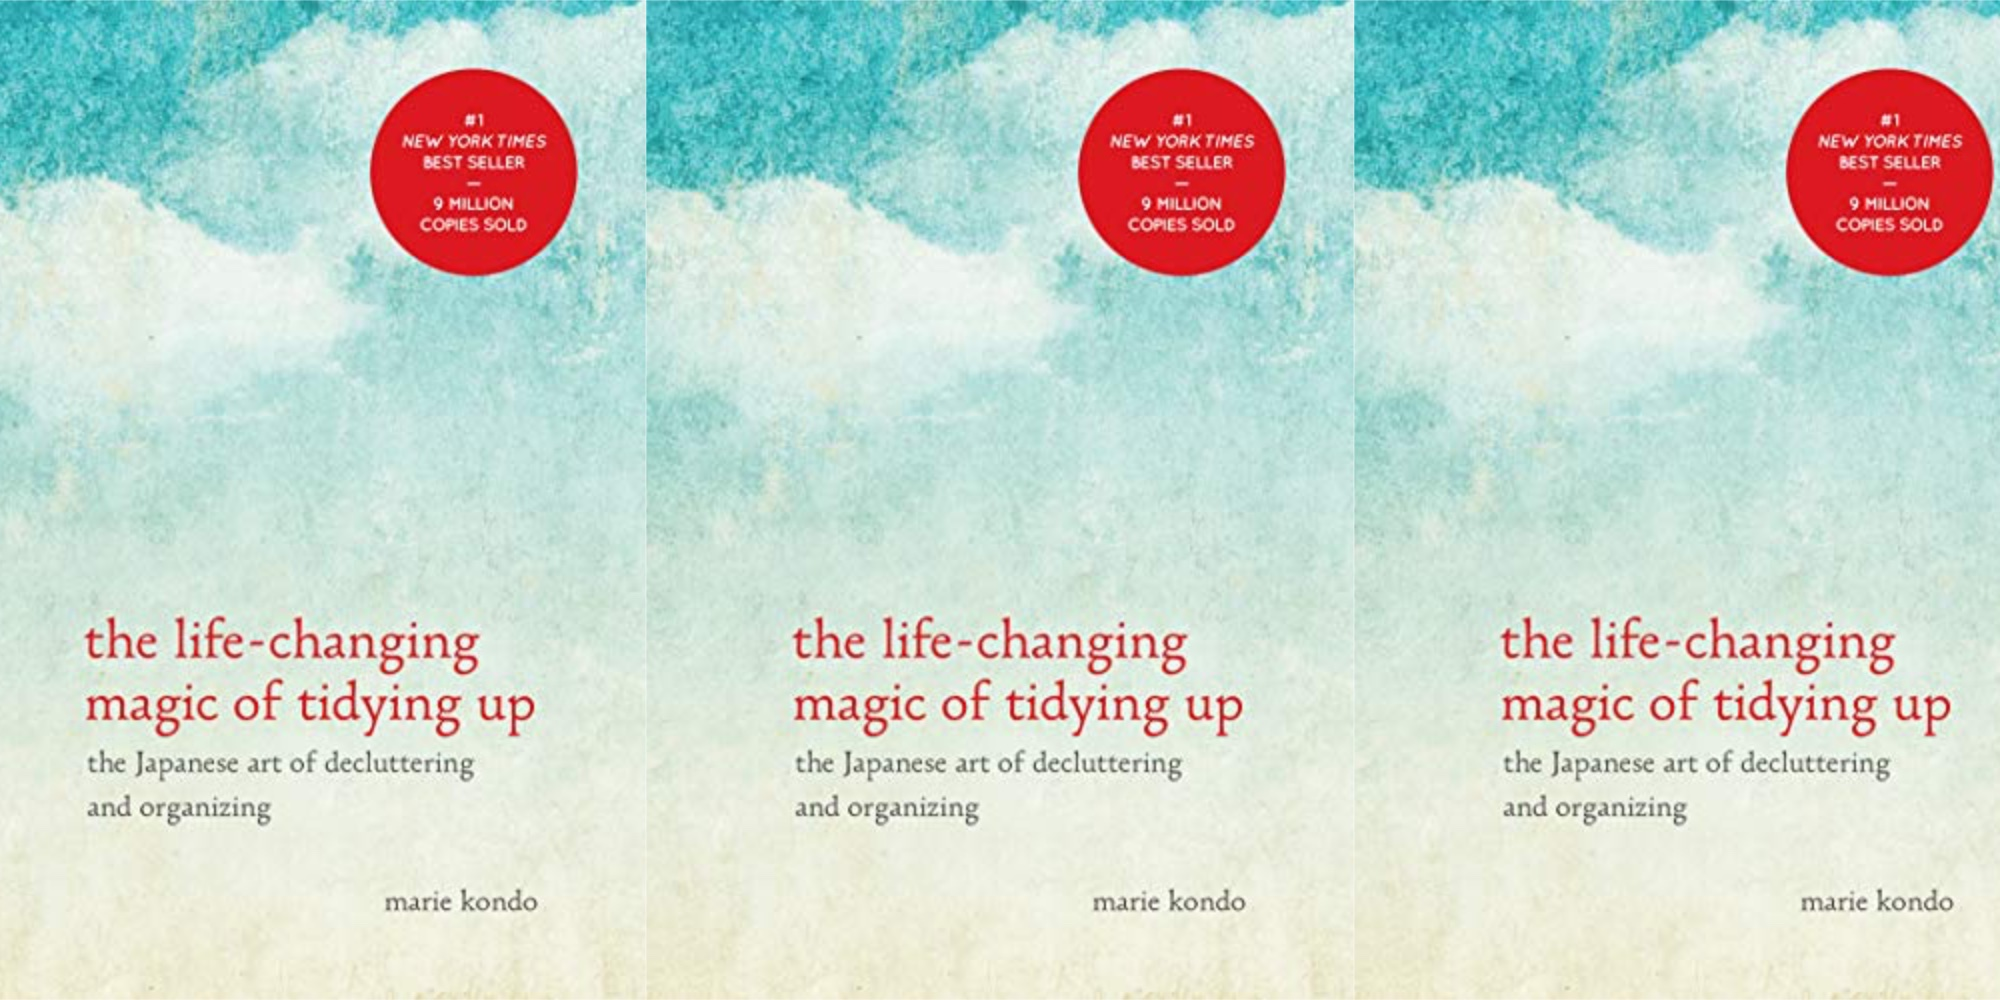 Read Marie Kondo's best-selling 'The Life-Changing Magic of Tidying Up' on Kindle for $3